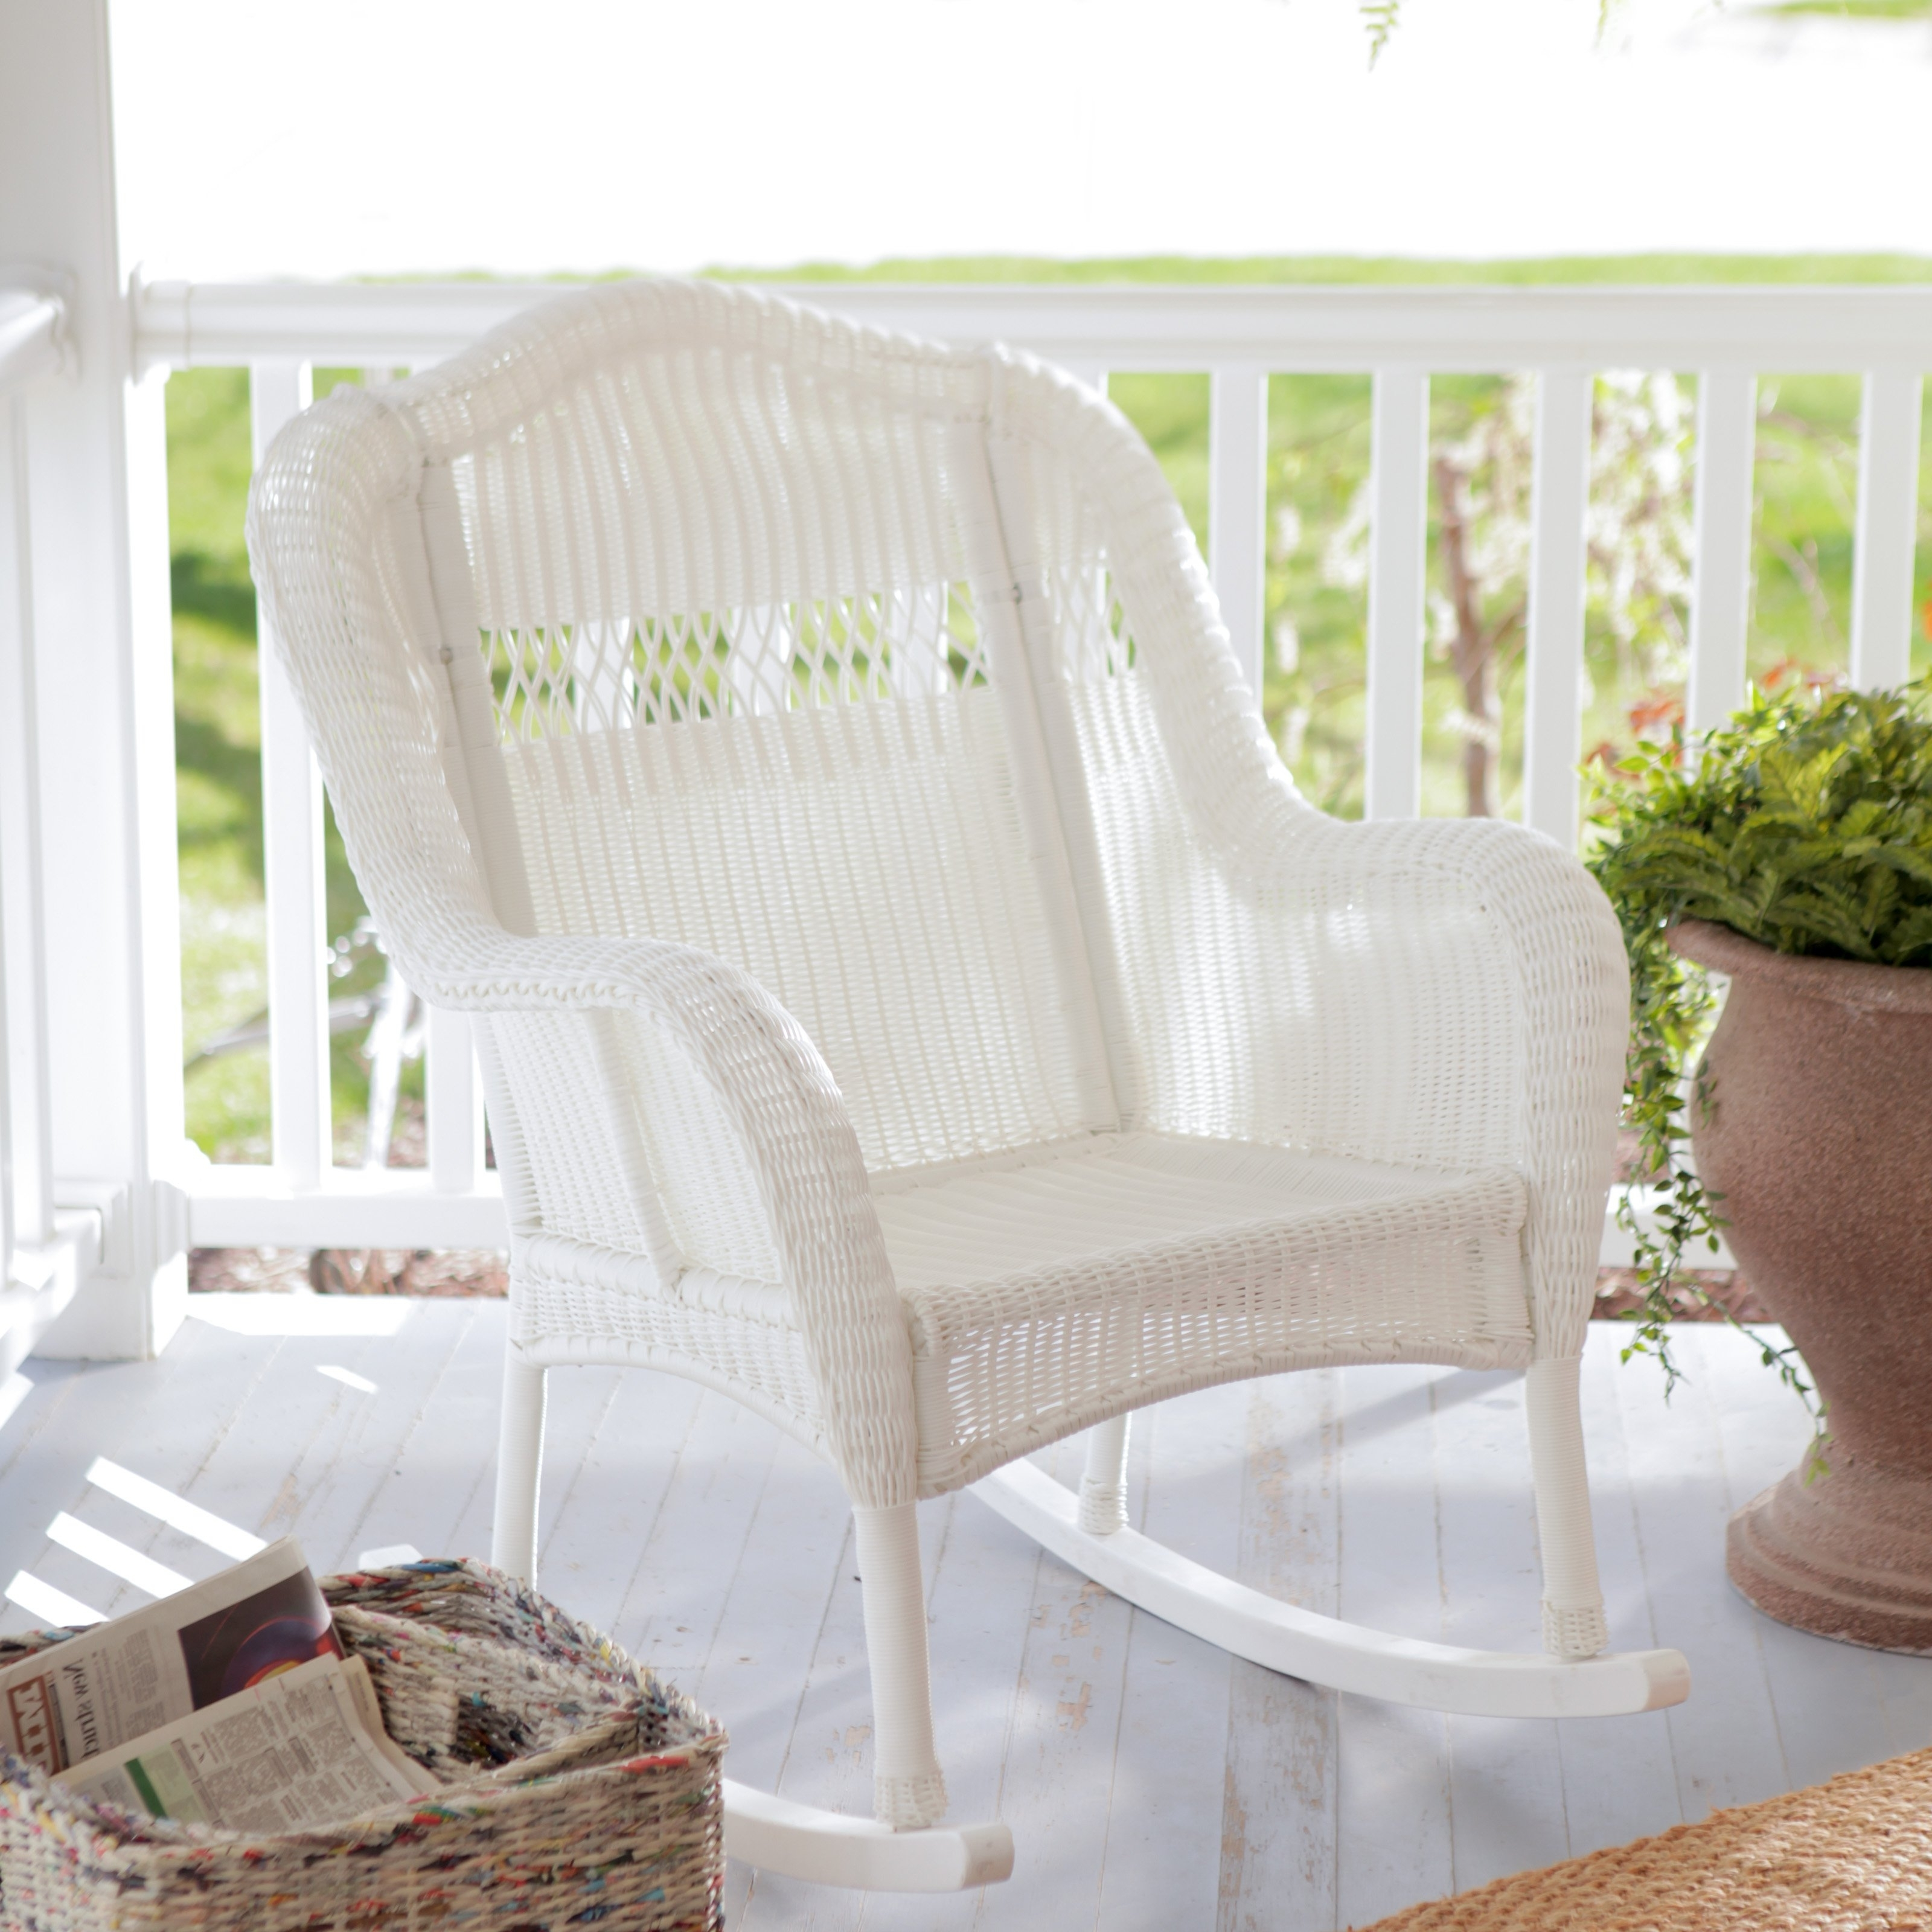 Marvelous White Wicker Rocking Chair On Stunning Barstools And With Regard To 2017 White Wicker Rocking Chairs (View 7 of 15)